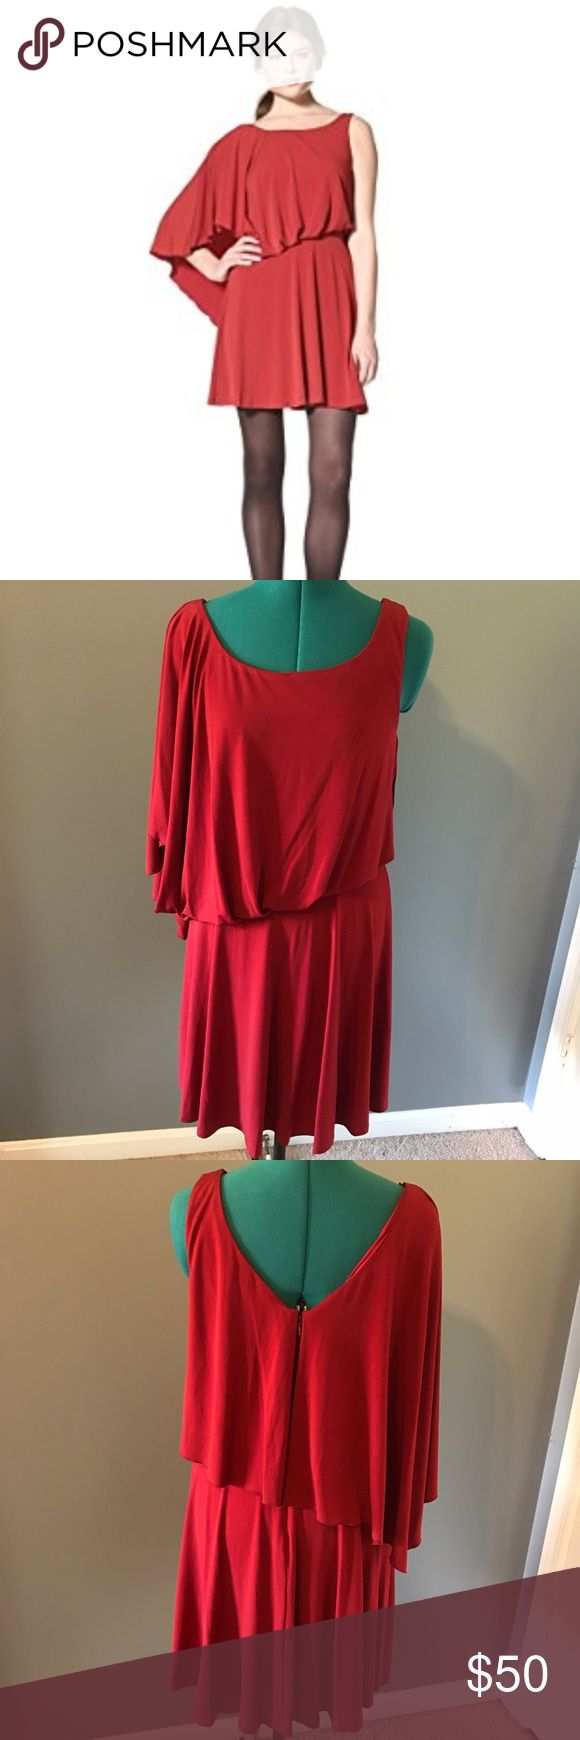 Jessica Simpson red sexy batwing party dress 10 New with tag! Jessica Simpson asymmetrical batwing dress in tomato red. Cute blouson style. Zips in back. Jessica Simpson Dresses